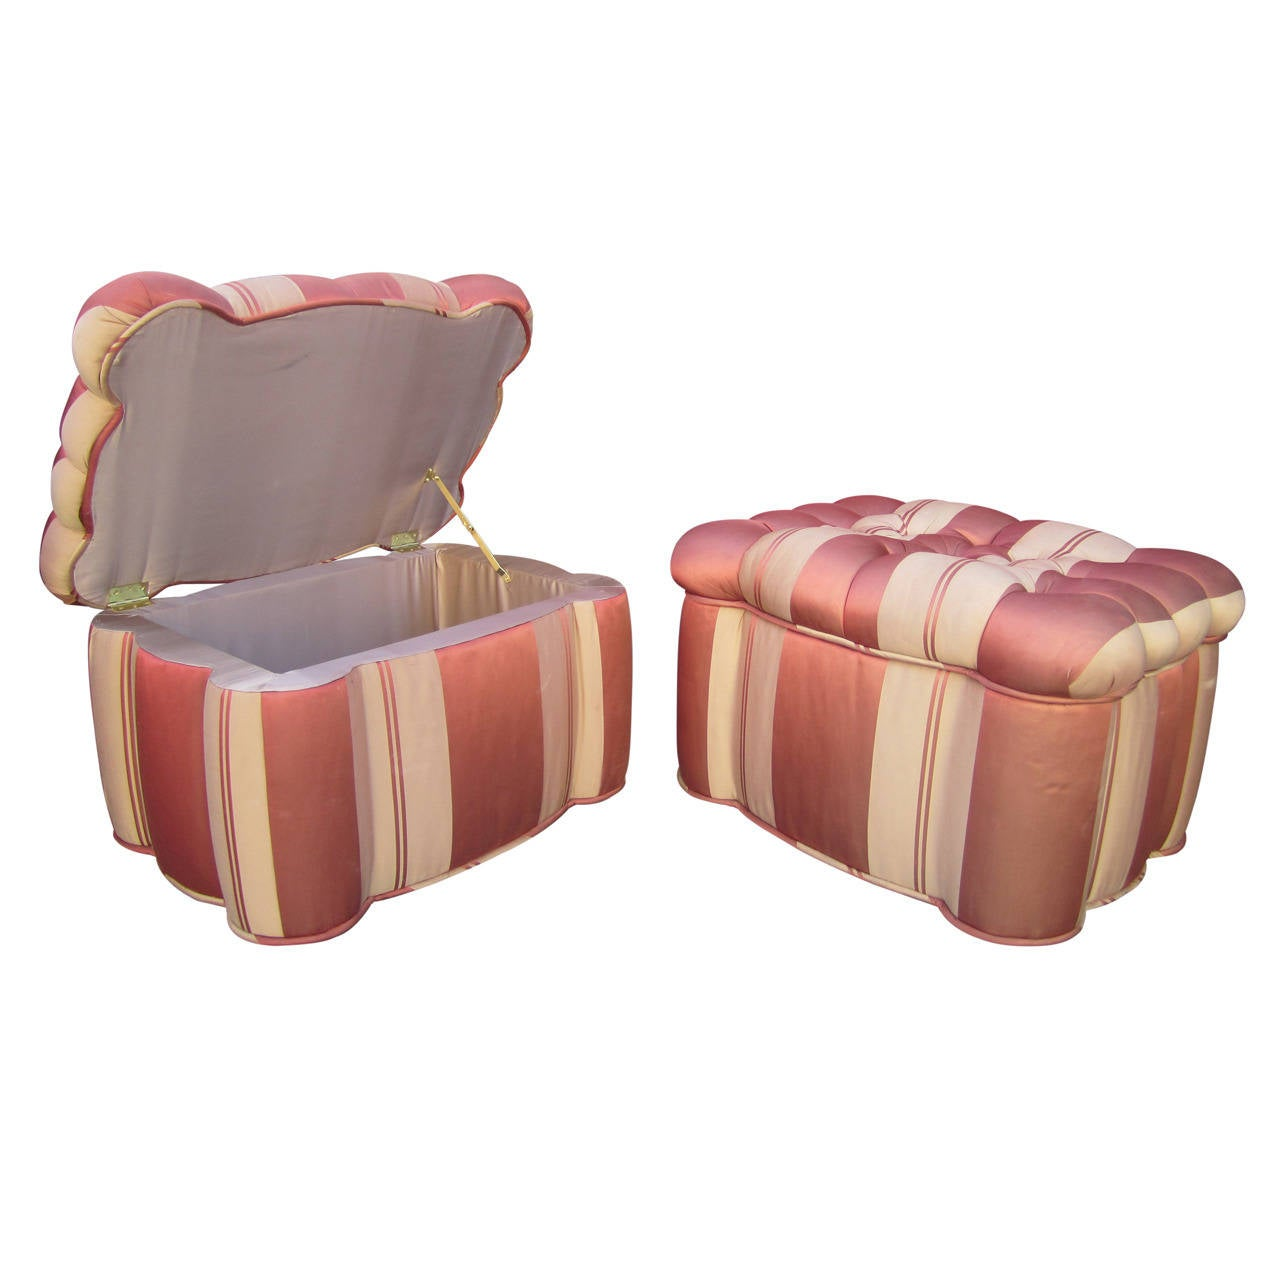 Striped Tufted Storage Ottomans Pair For Sale At 1stdibs